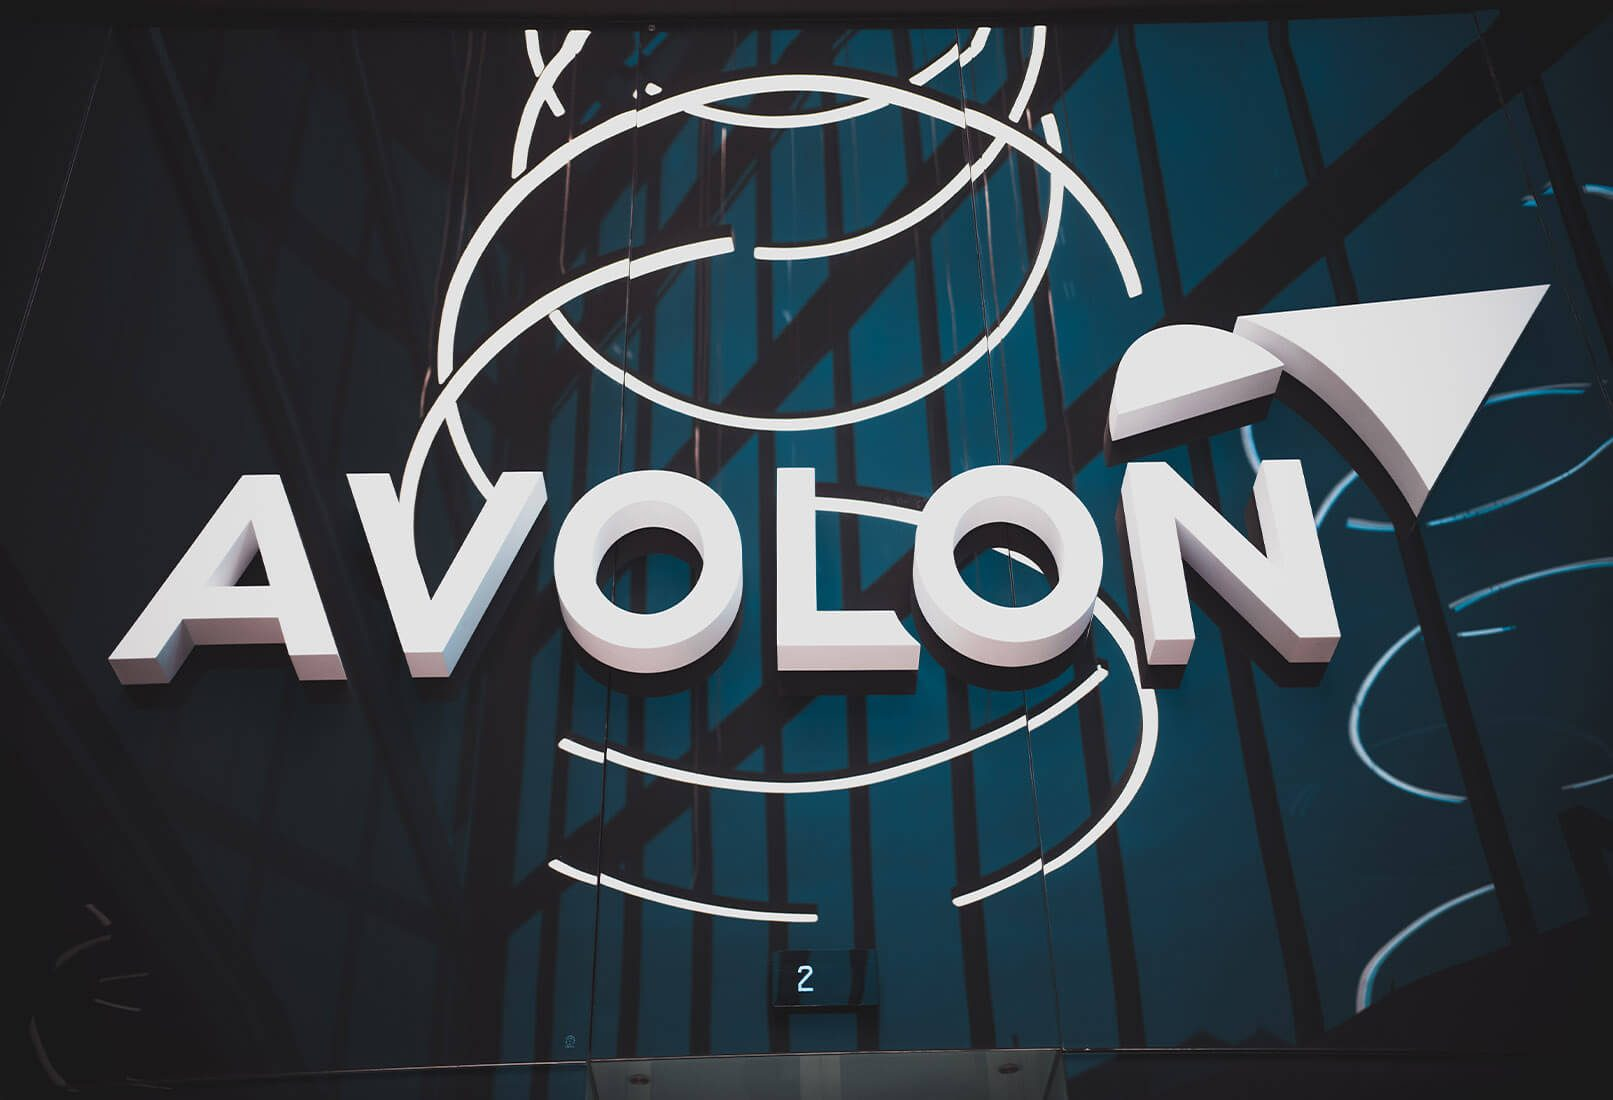 Falko agrees with Avolon to acquire 49 aircraft